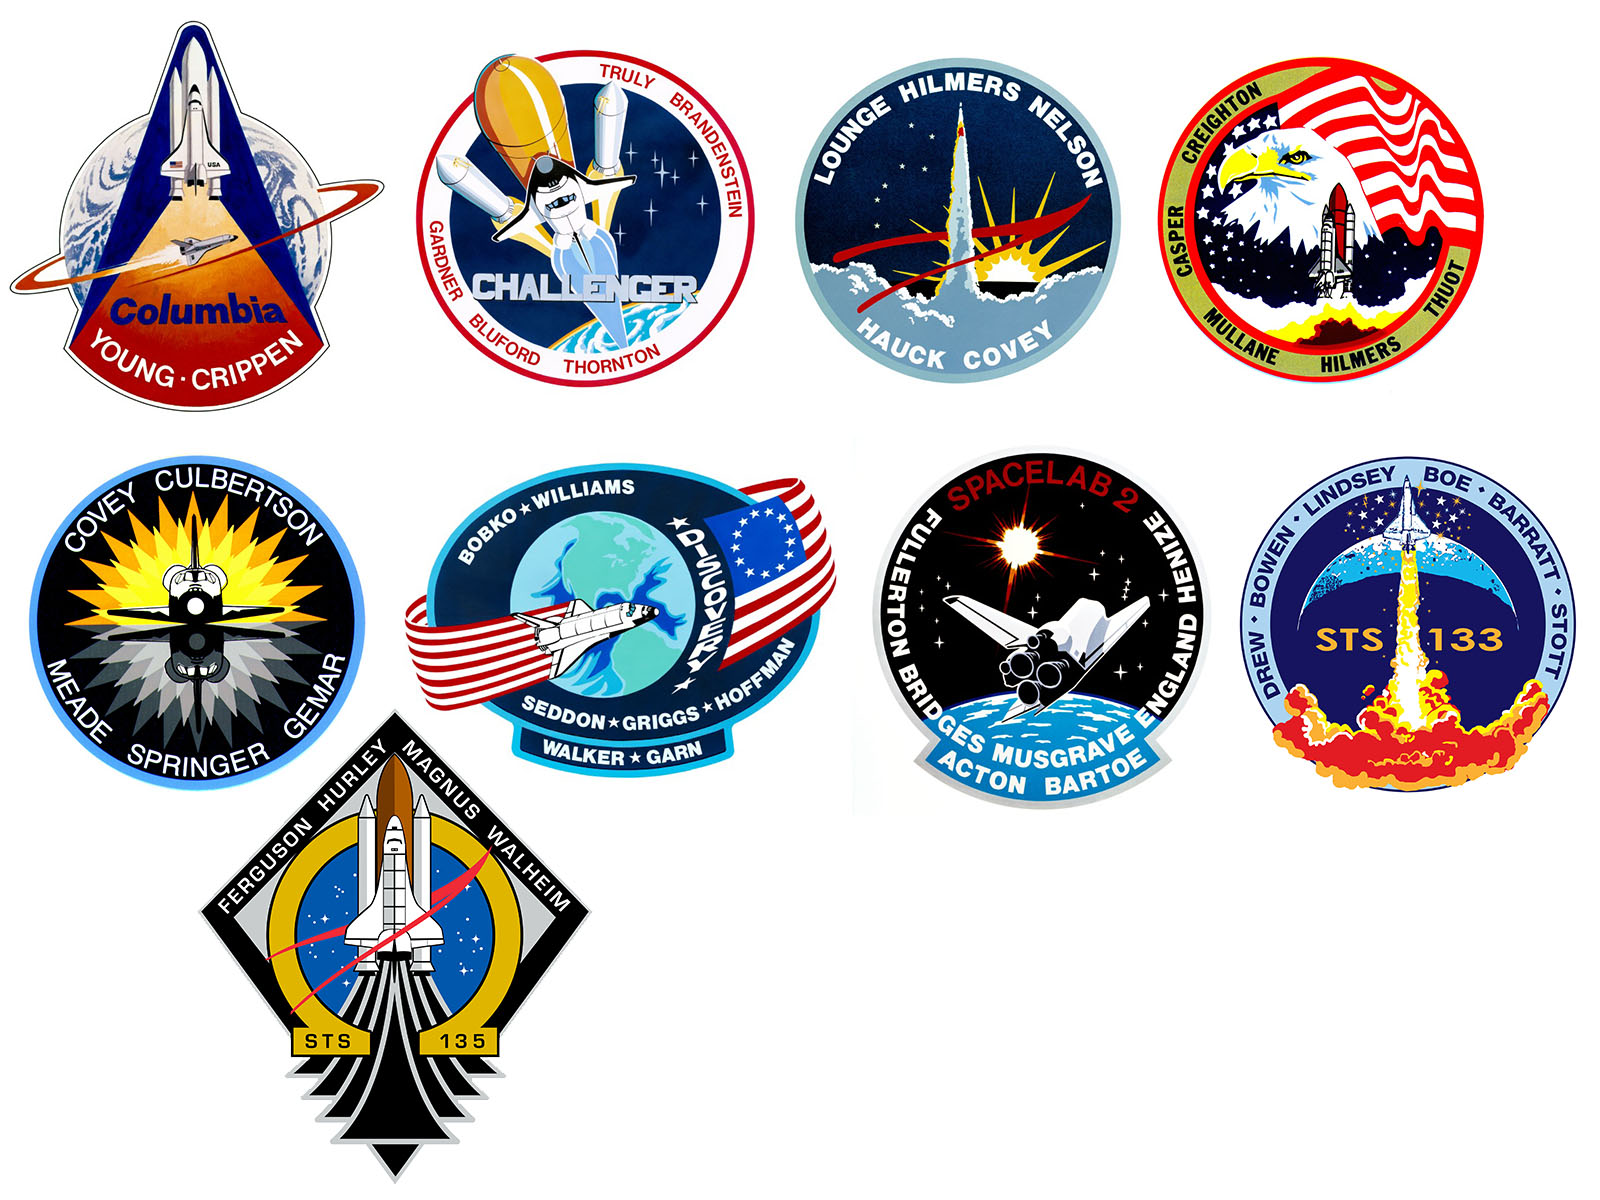 nasa astronaut wings logo - photo #47